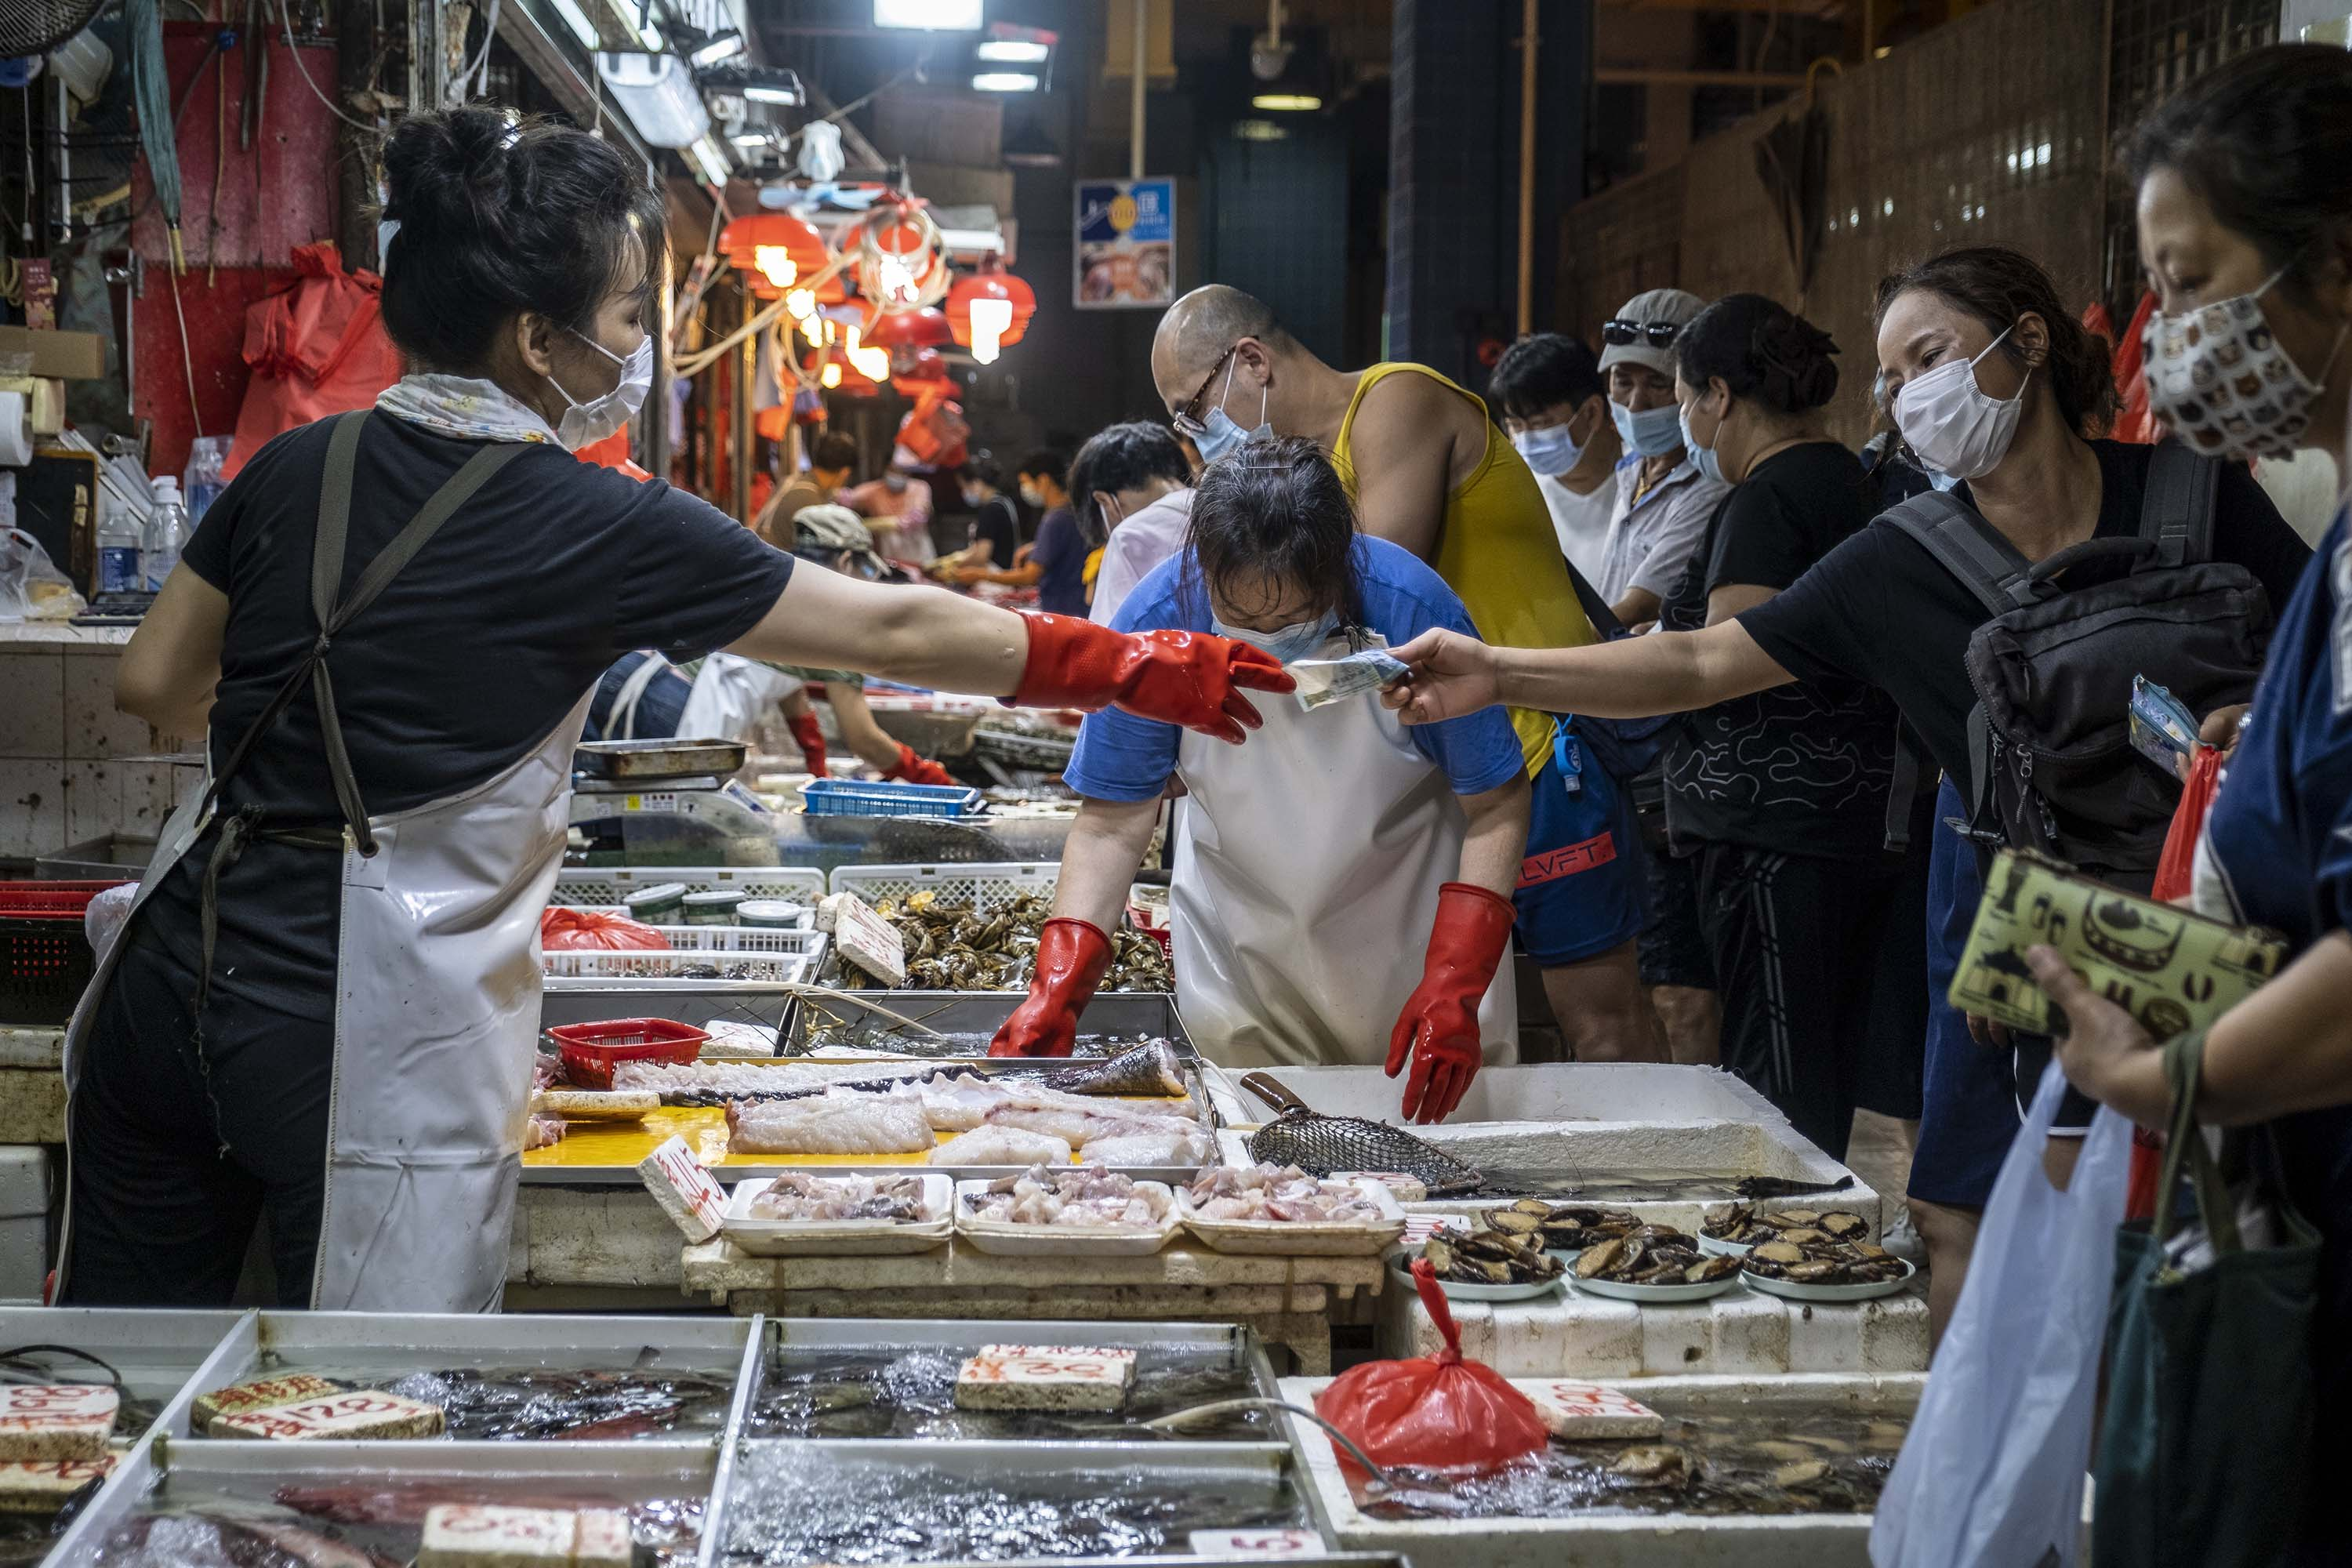 People are seen wearing face masks at a wet market Hong Kong on Saturday, July 25.